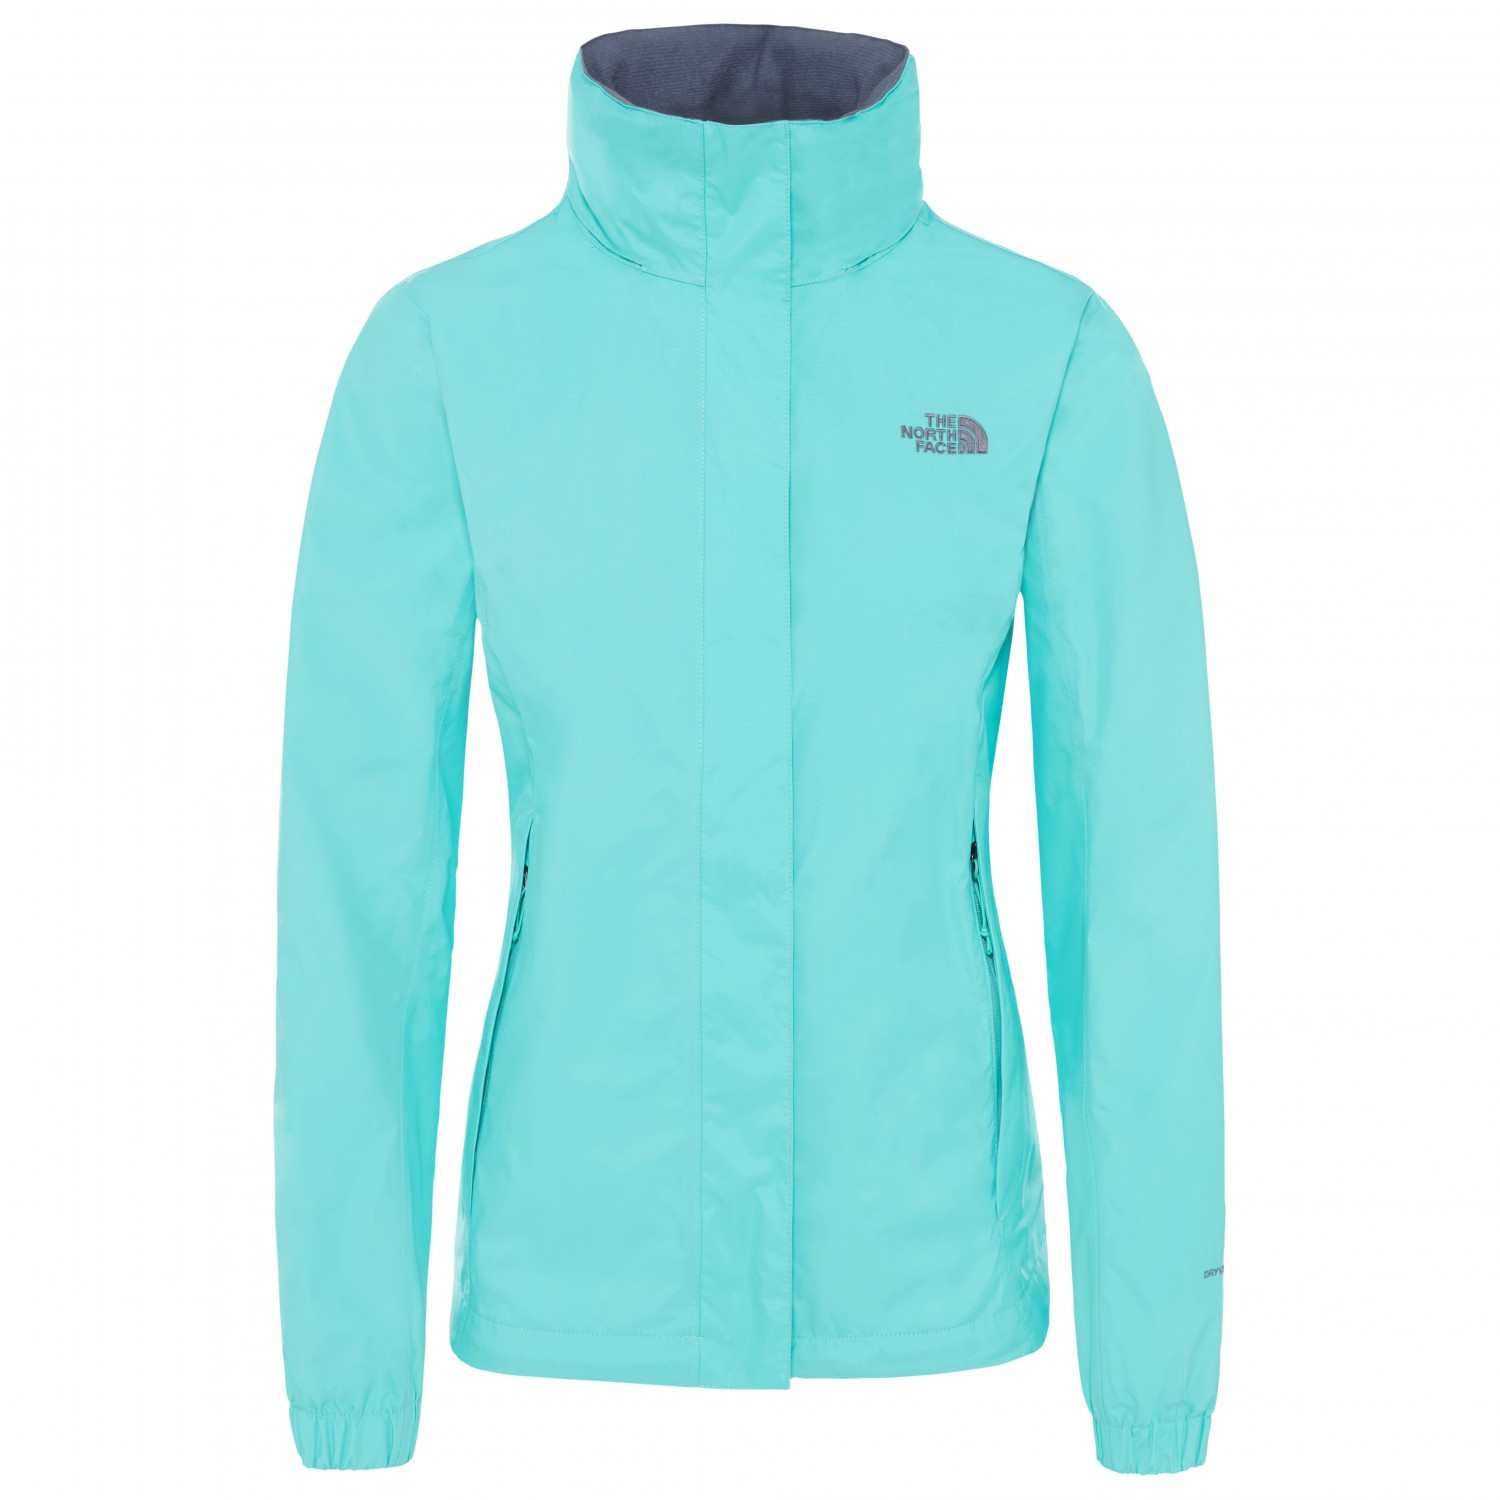 2c778ee511bf The North Face - Women s Resolve 2 Jacket - Waterproof jacket